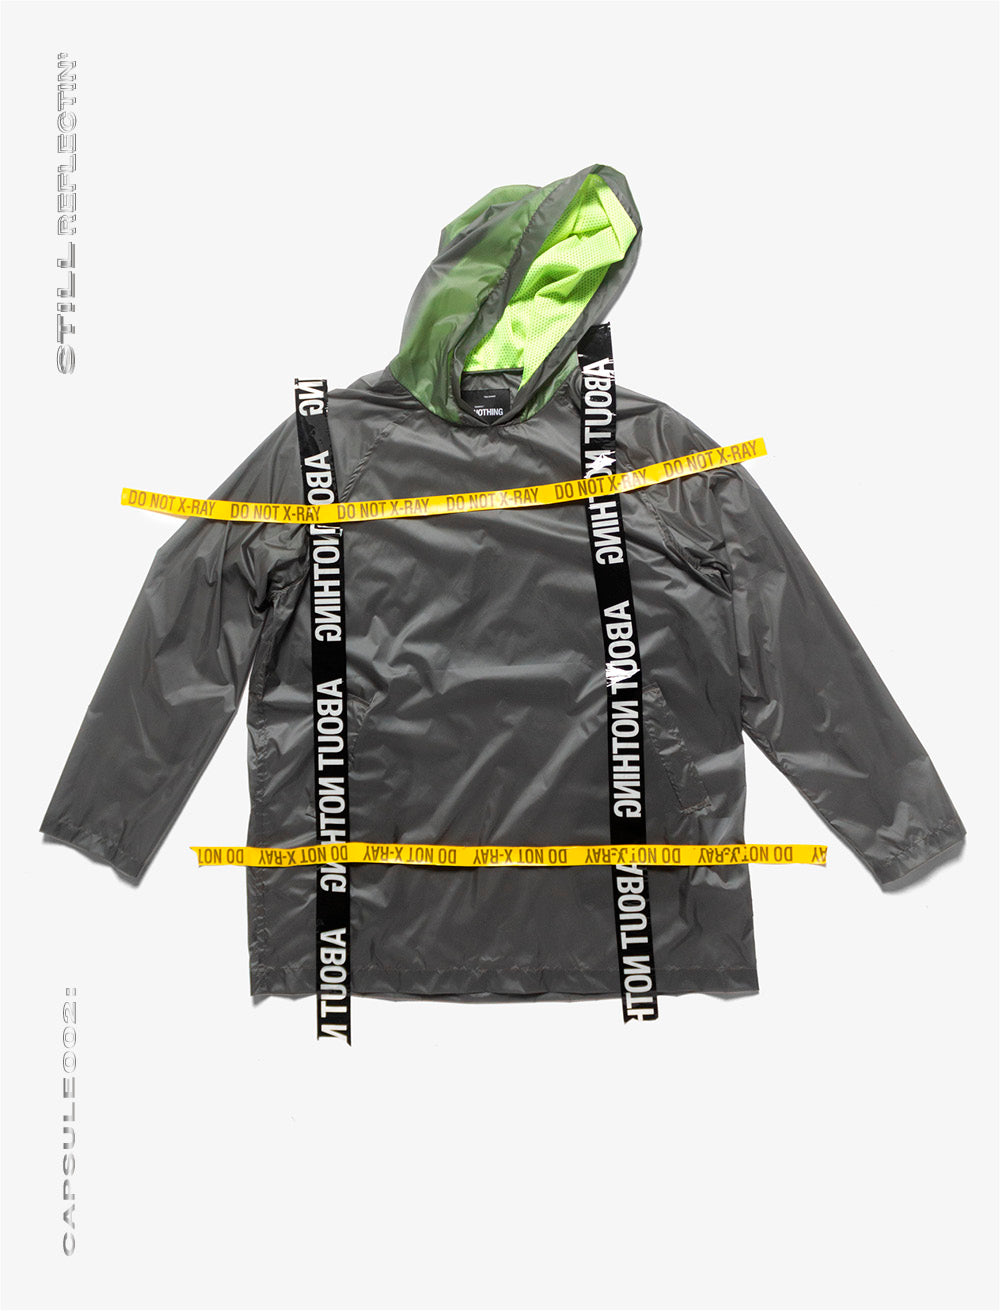 SPORTS RAINCOAT // TRANSLUCID NYLON